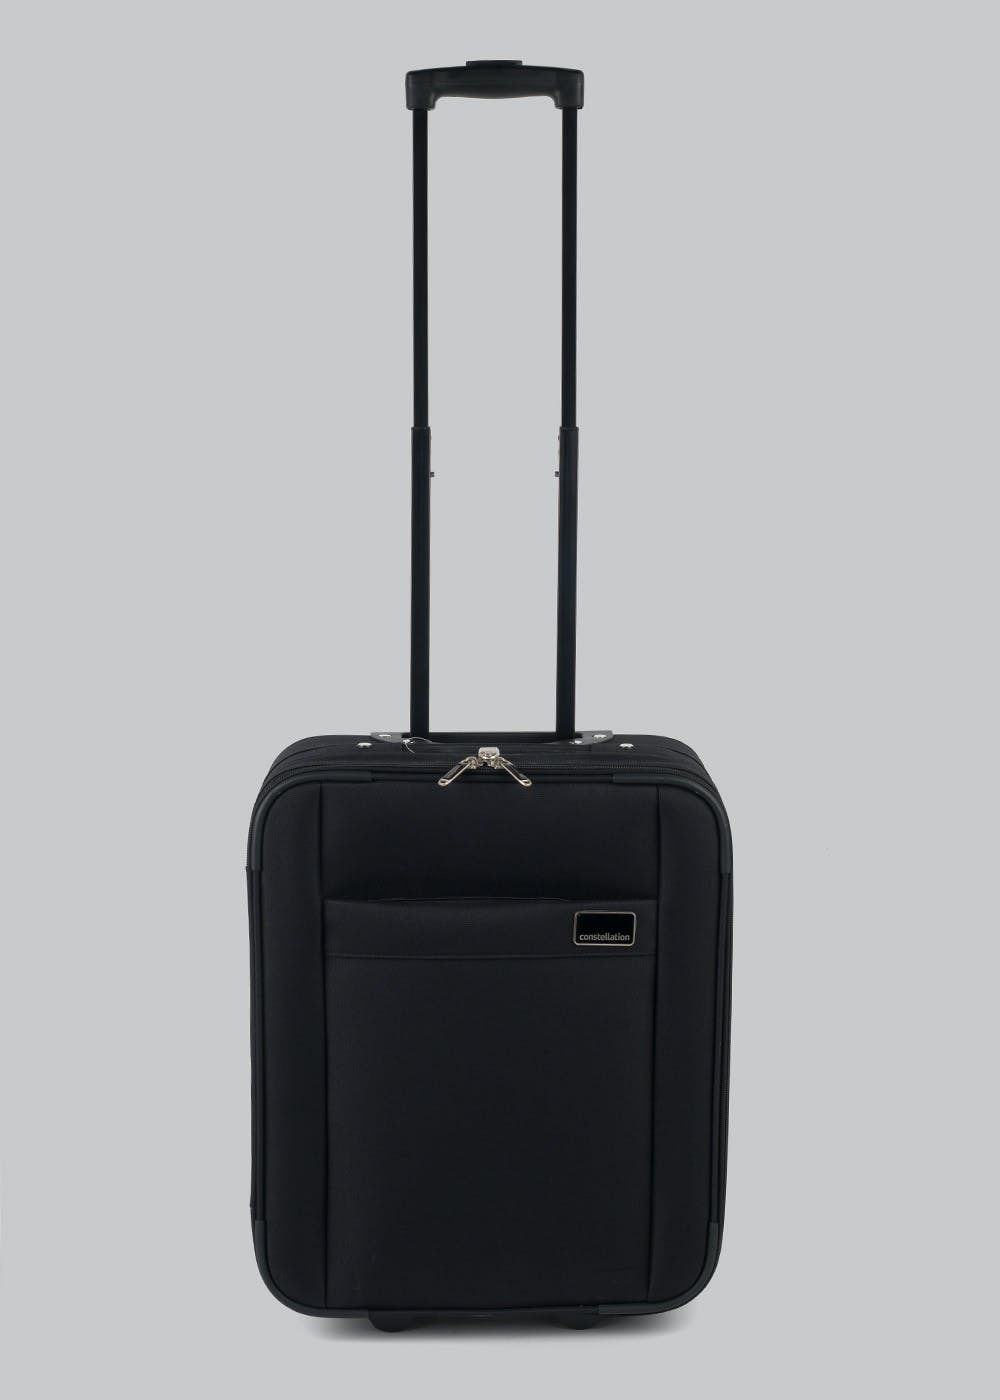 Constellation Easy Jet Approved Cabin Bag by Matalan